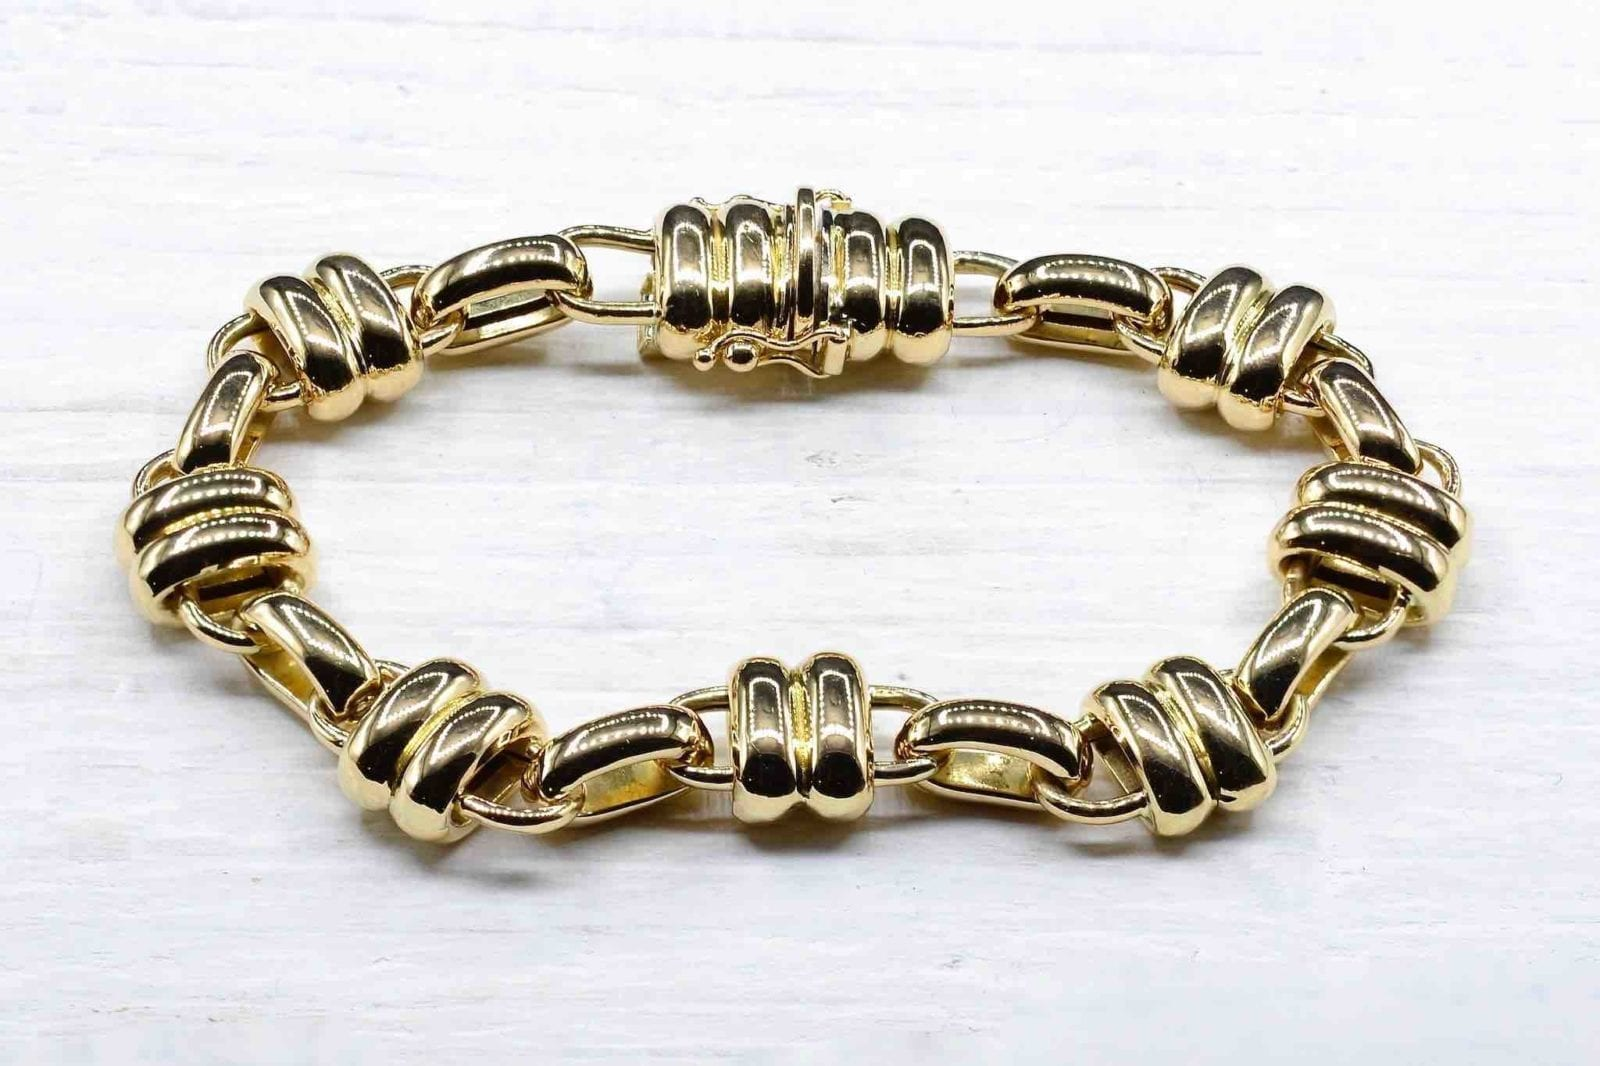 Bracelet signed Chaumet in 18k yellow gold